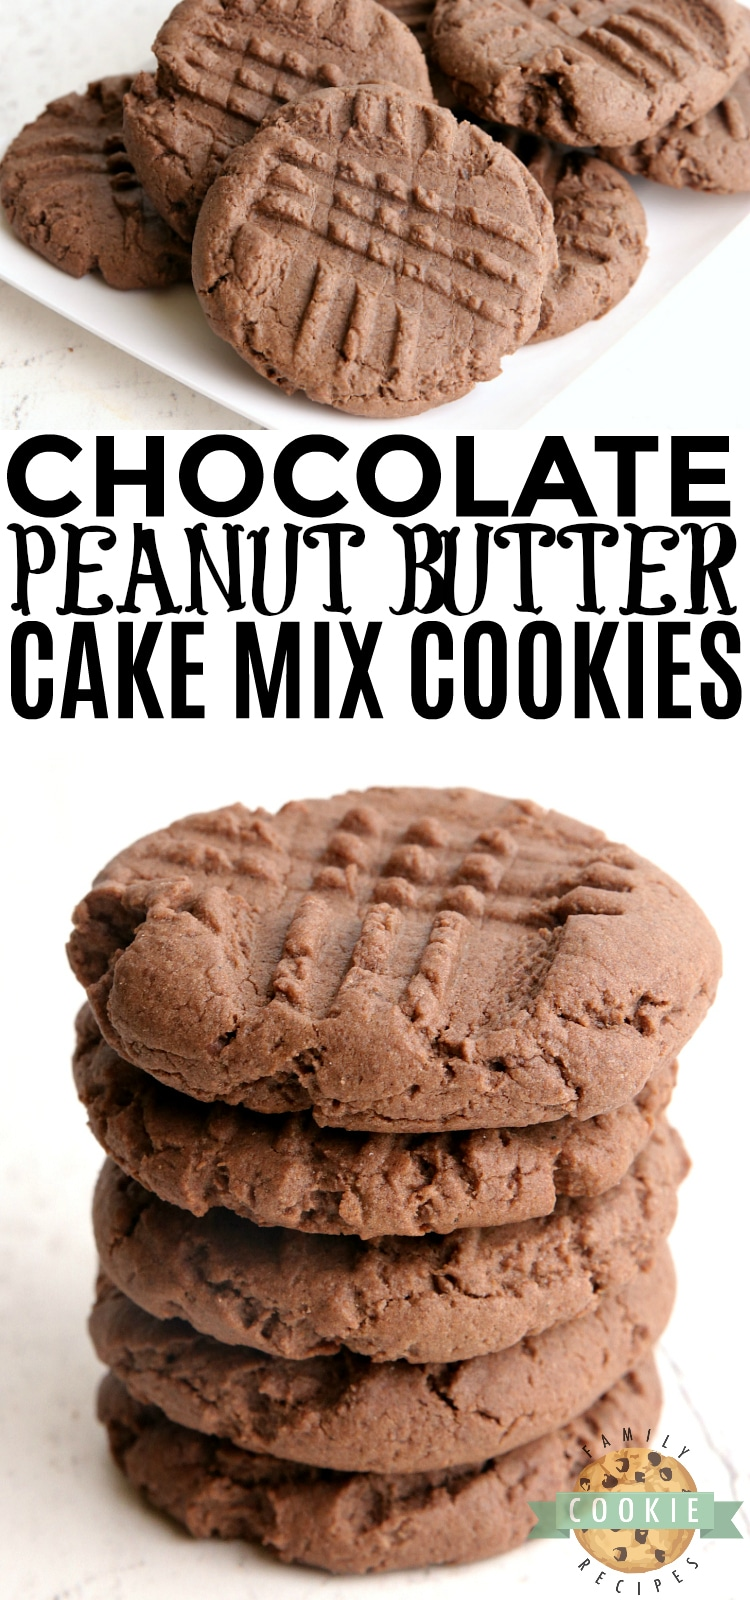 Chocolate Peanut Butter Cake Mix Cookies are soft, chewy and taste a little bit like peanut butter cups! Made with a chocolate cake mix, peanut butter, eggs and butter for a quick and easy cookie recipe. via @buttergirls